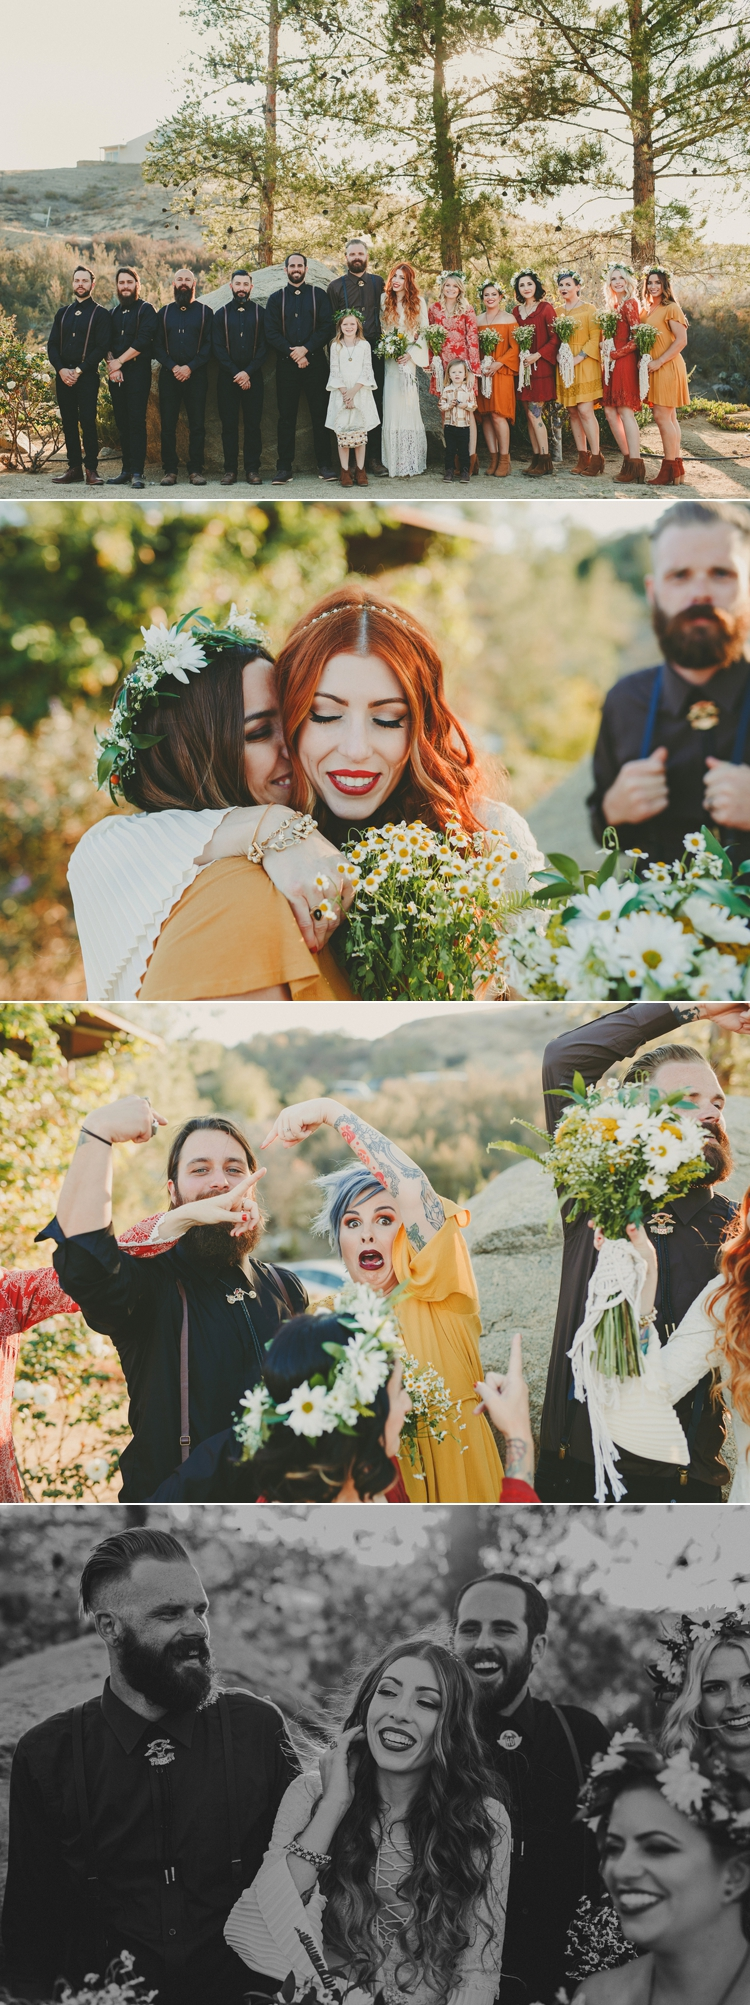 woodstock-inspired-wedding-photos-20